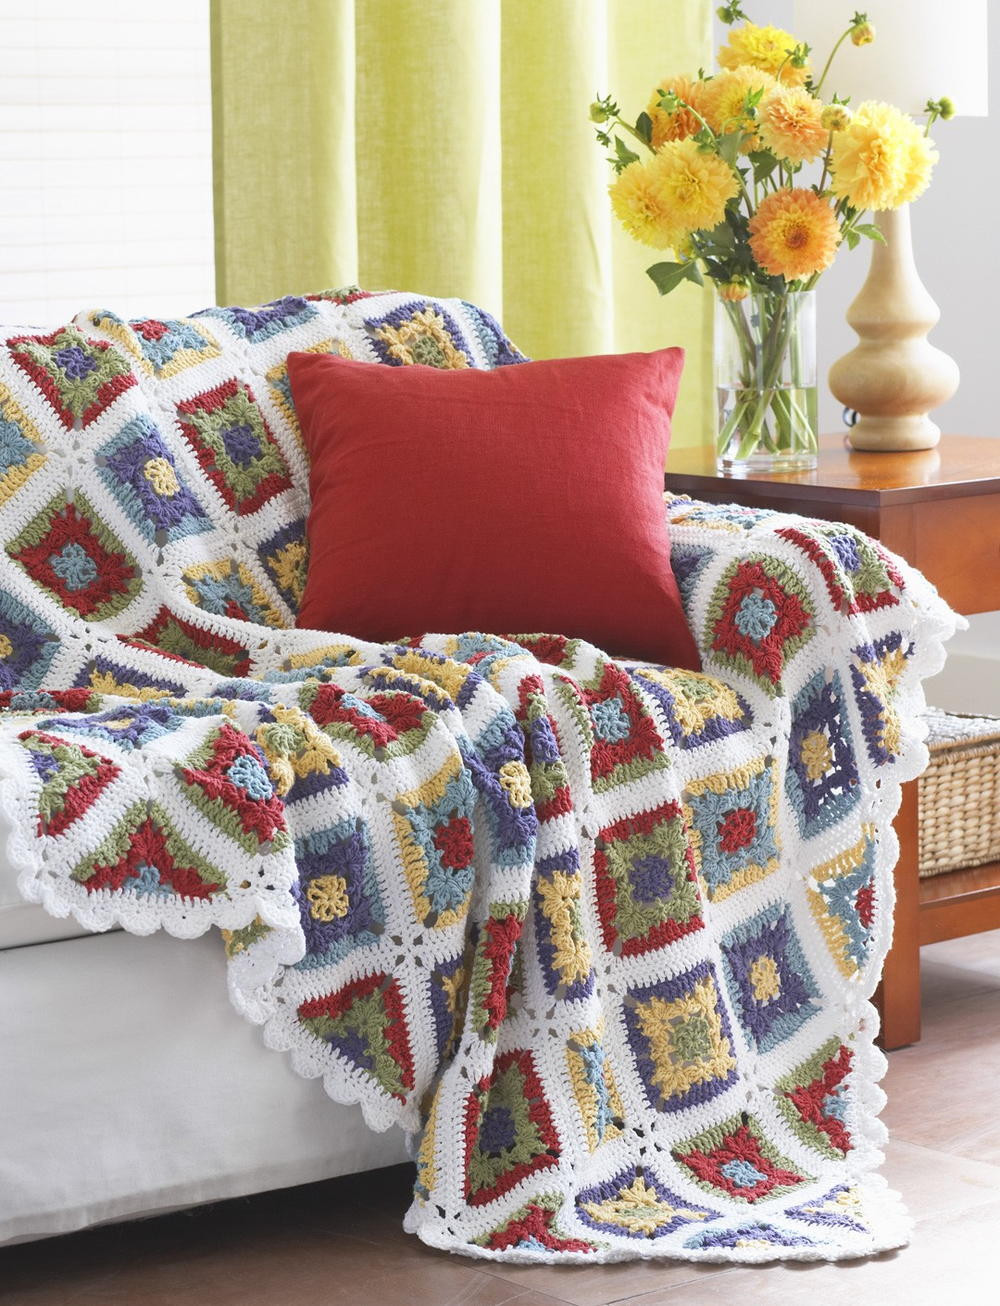 Blanket Patterns New Country Charm Crochet Blanket Pattern Of Fresh 49 Pics Blanket Patterns